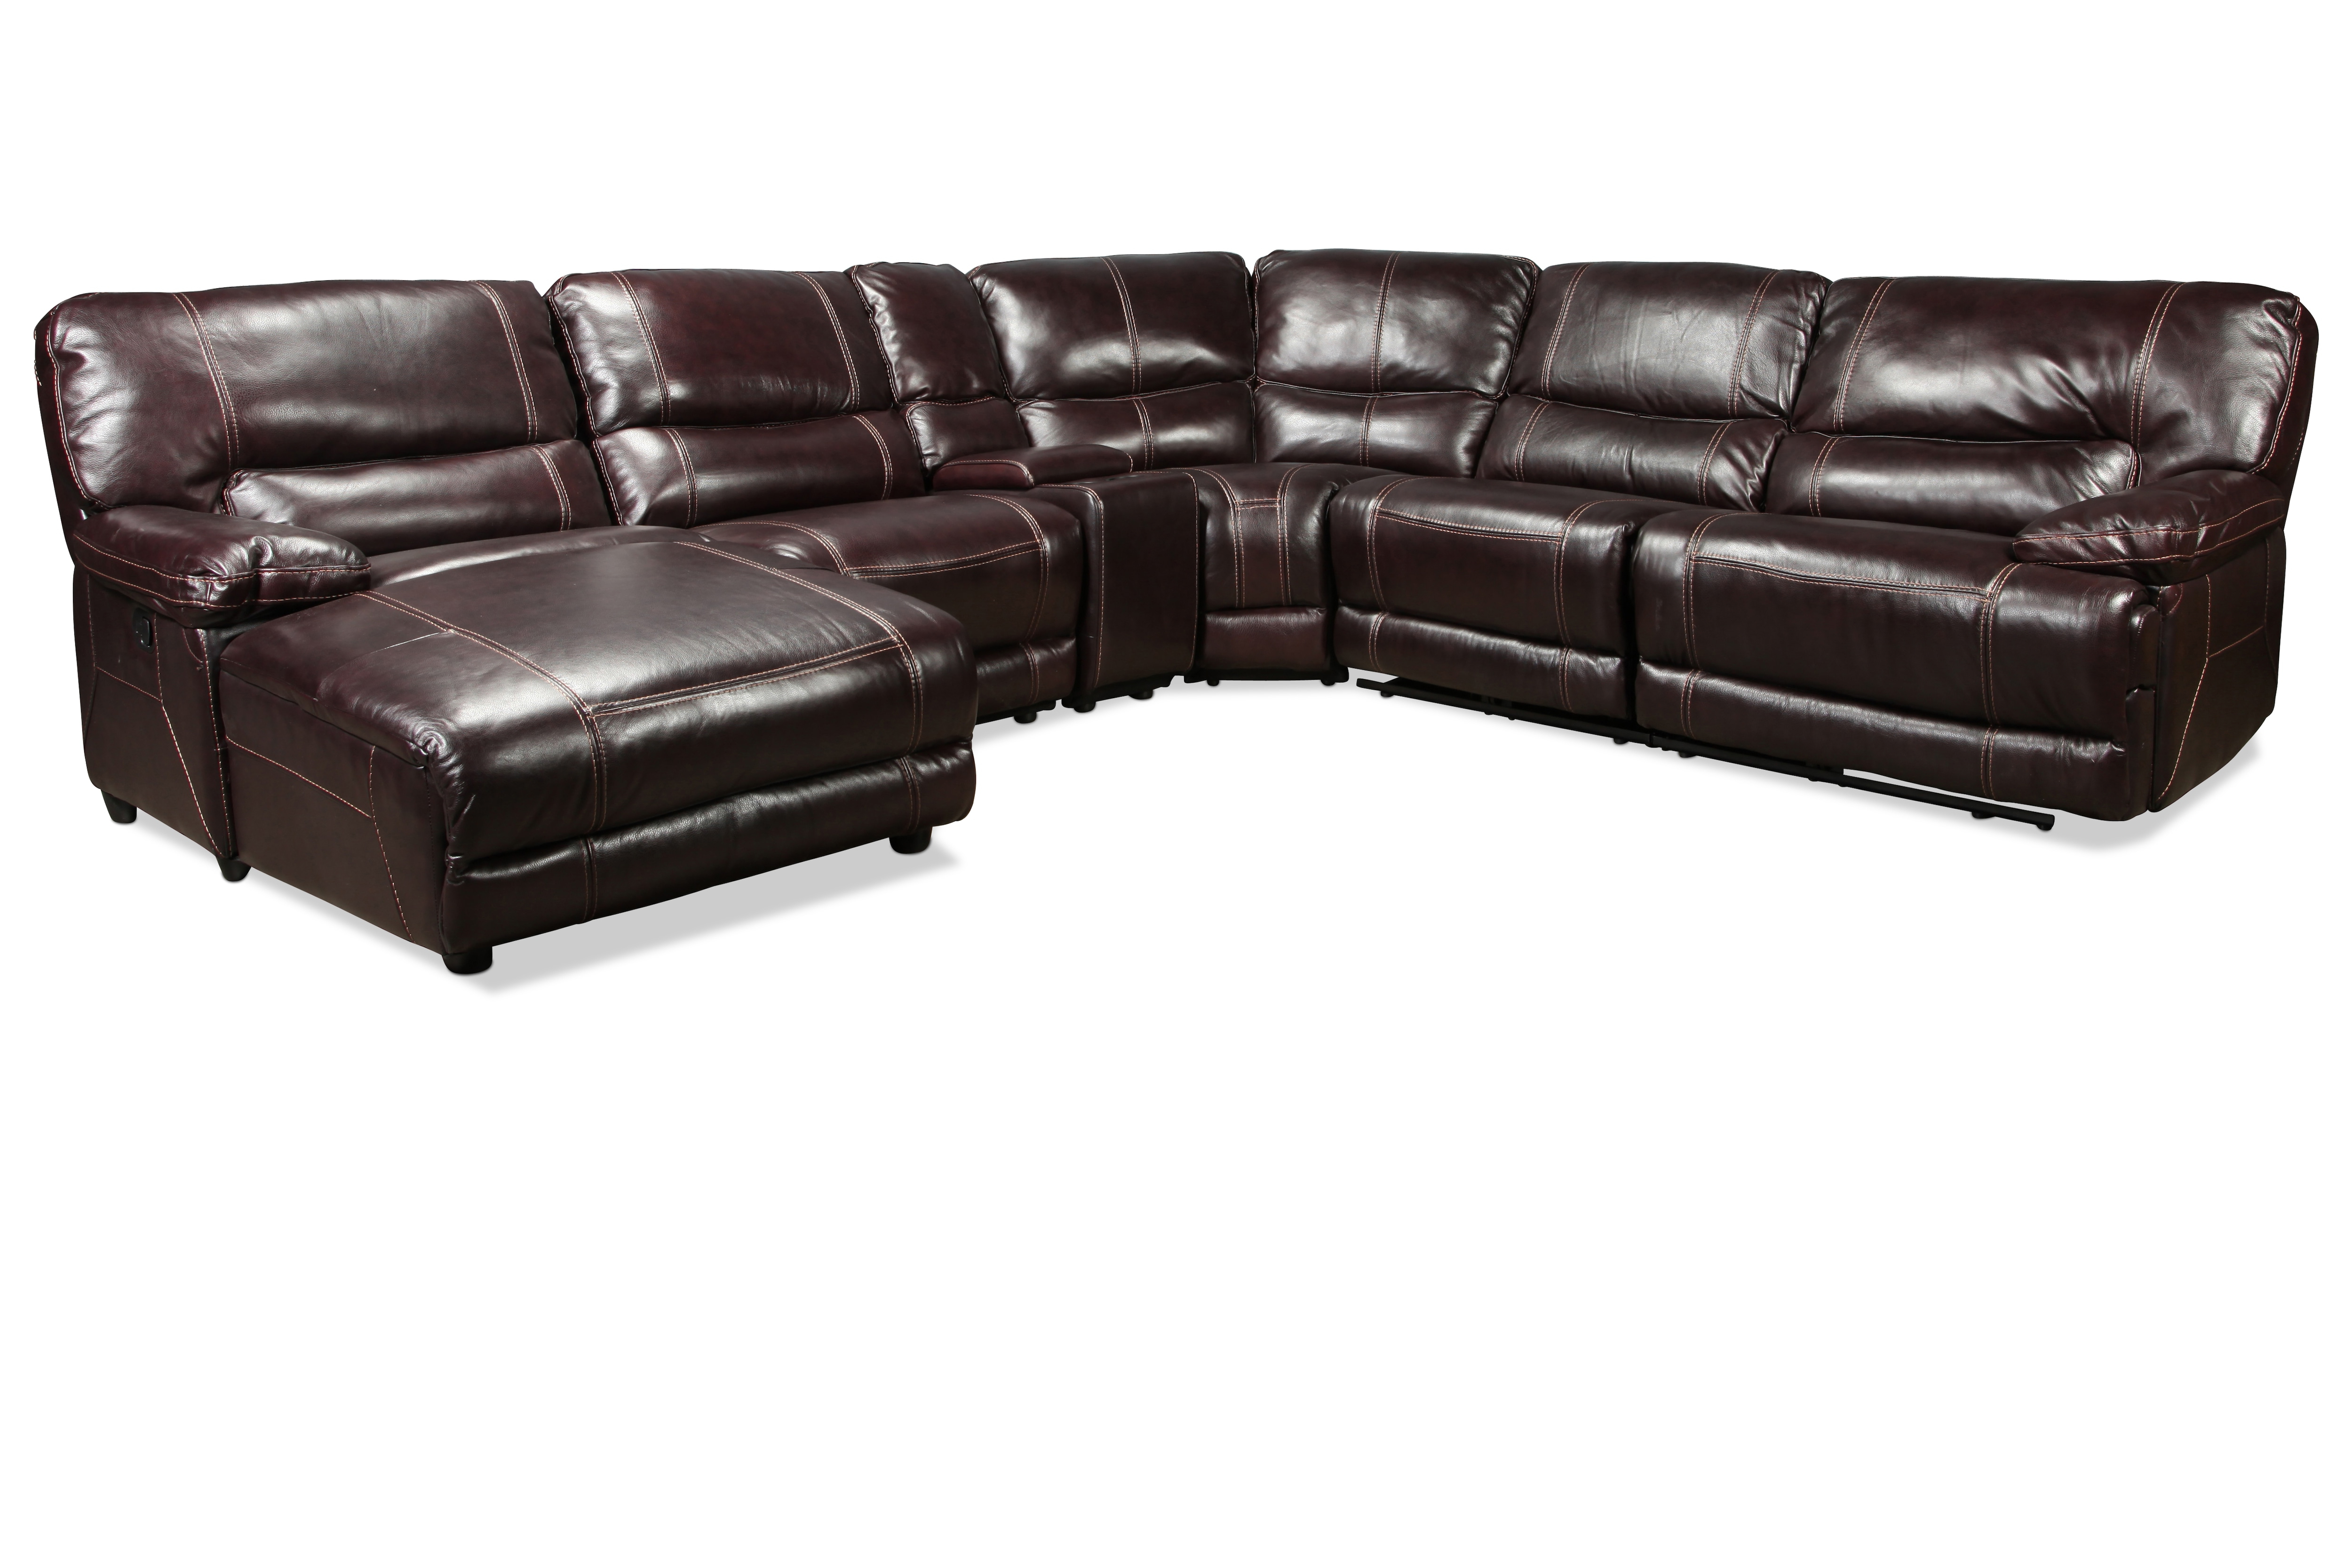 Levin Furniture For Tatum Dark Grey 2 Piece Sectionals With Laf Chaise (View 3 of 20)